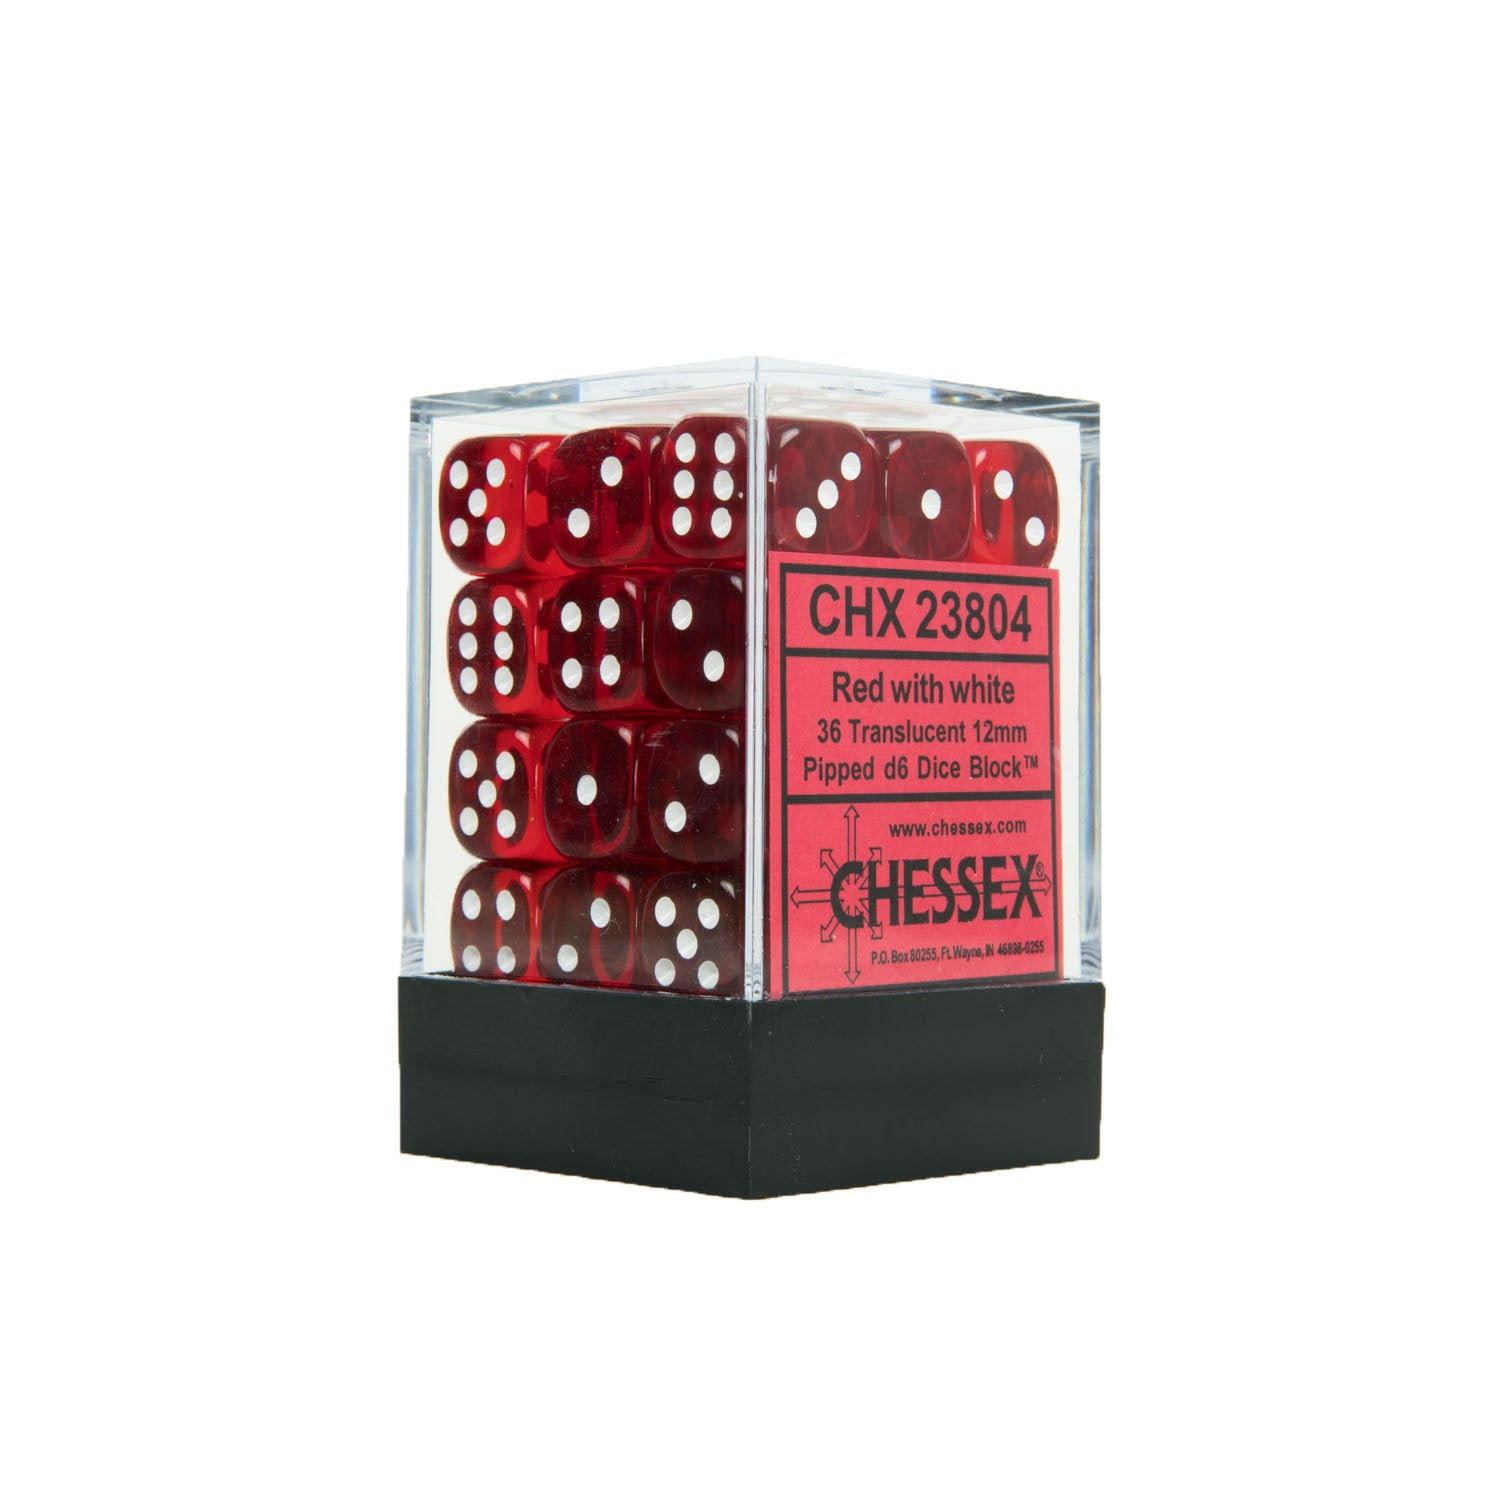 Chessex CHX23804 36 Red w/ white Translucent 12mm d6 Dice Block